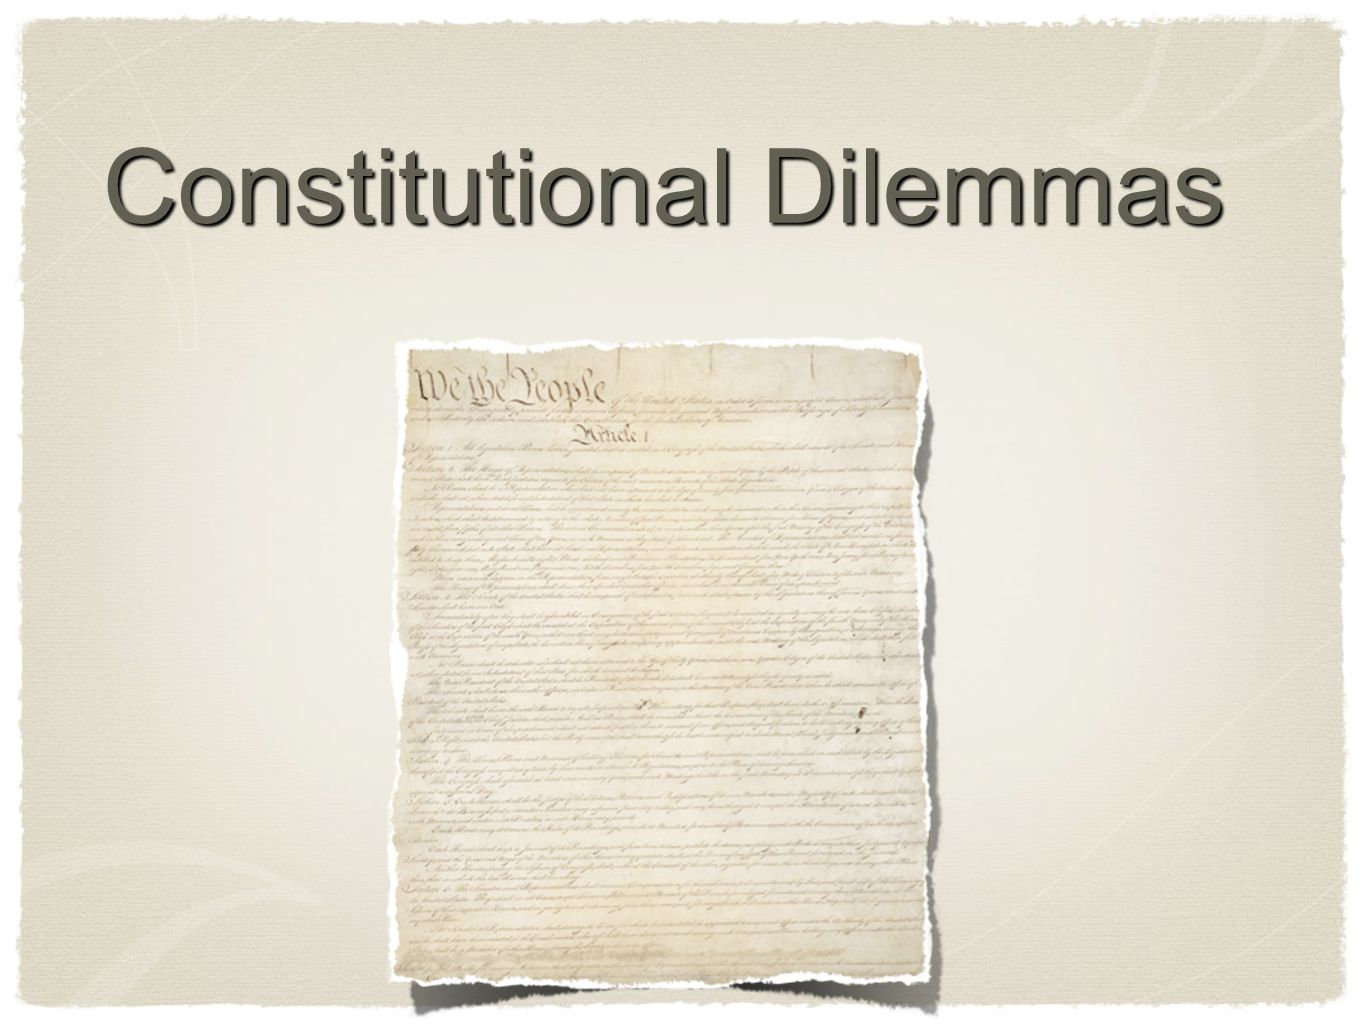 Constitutional Dilemmas